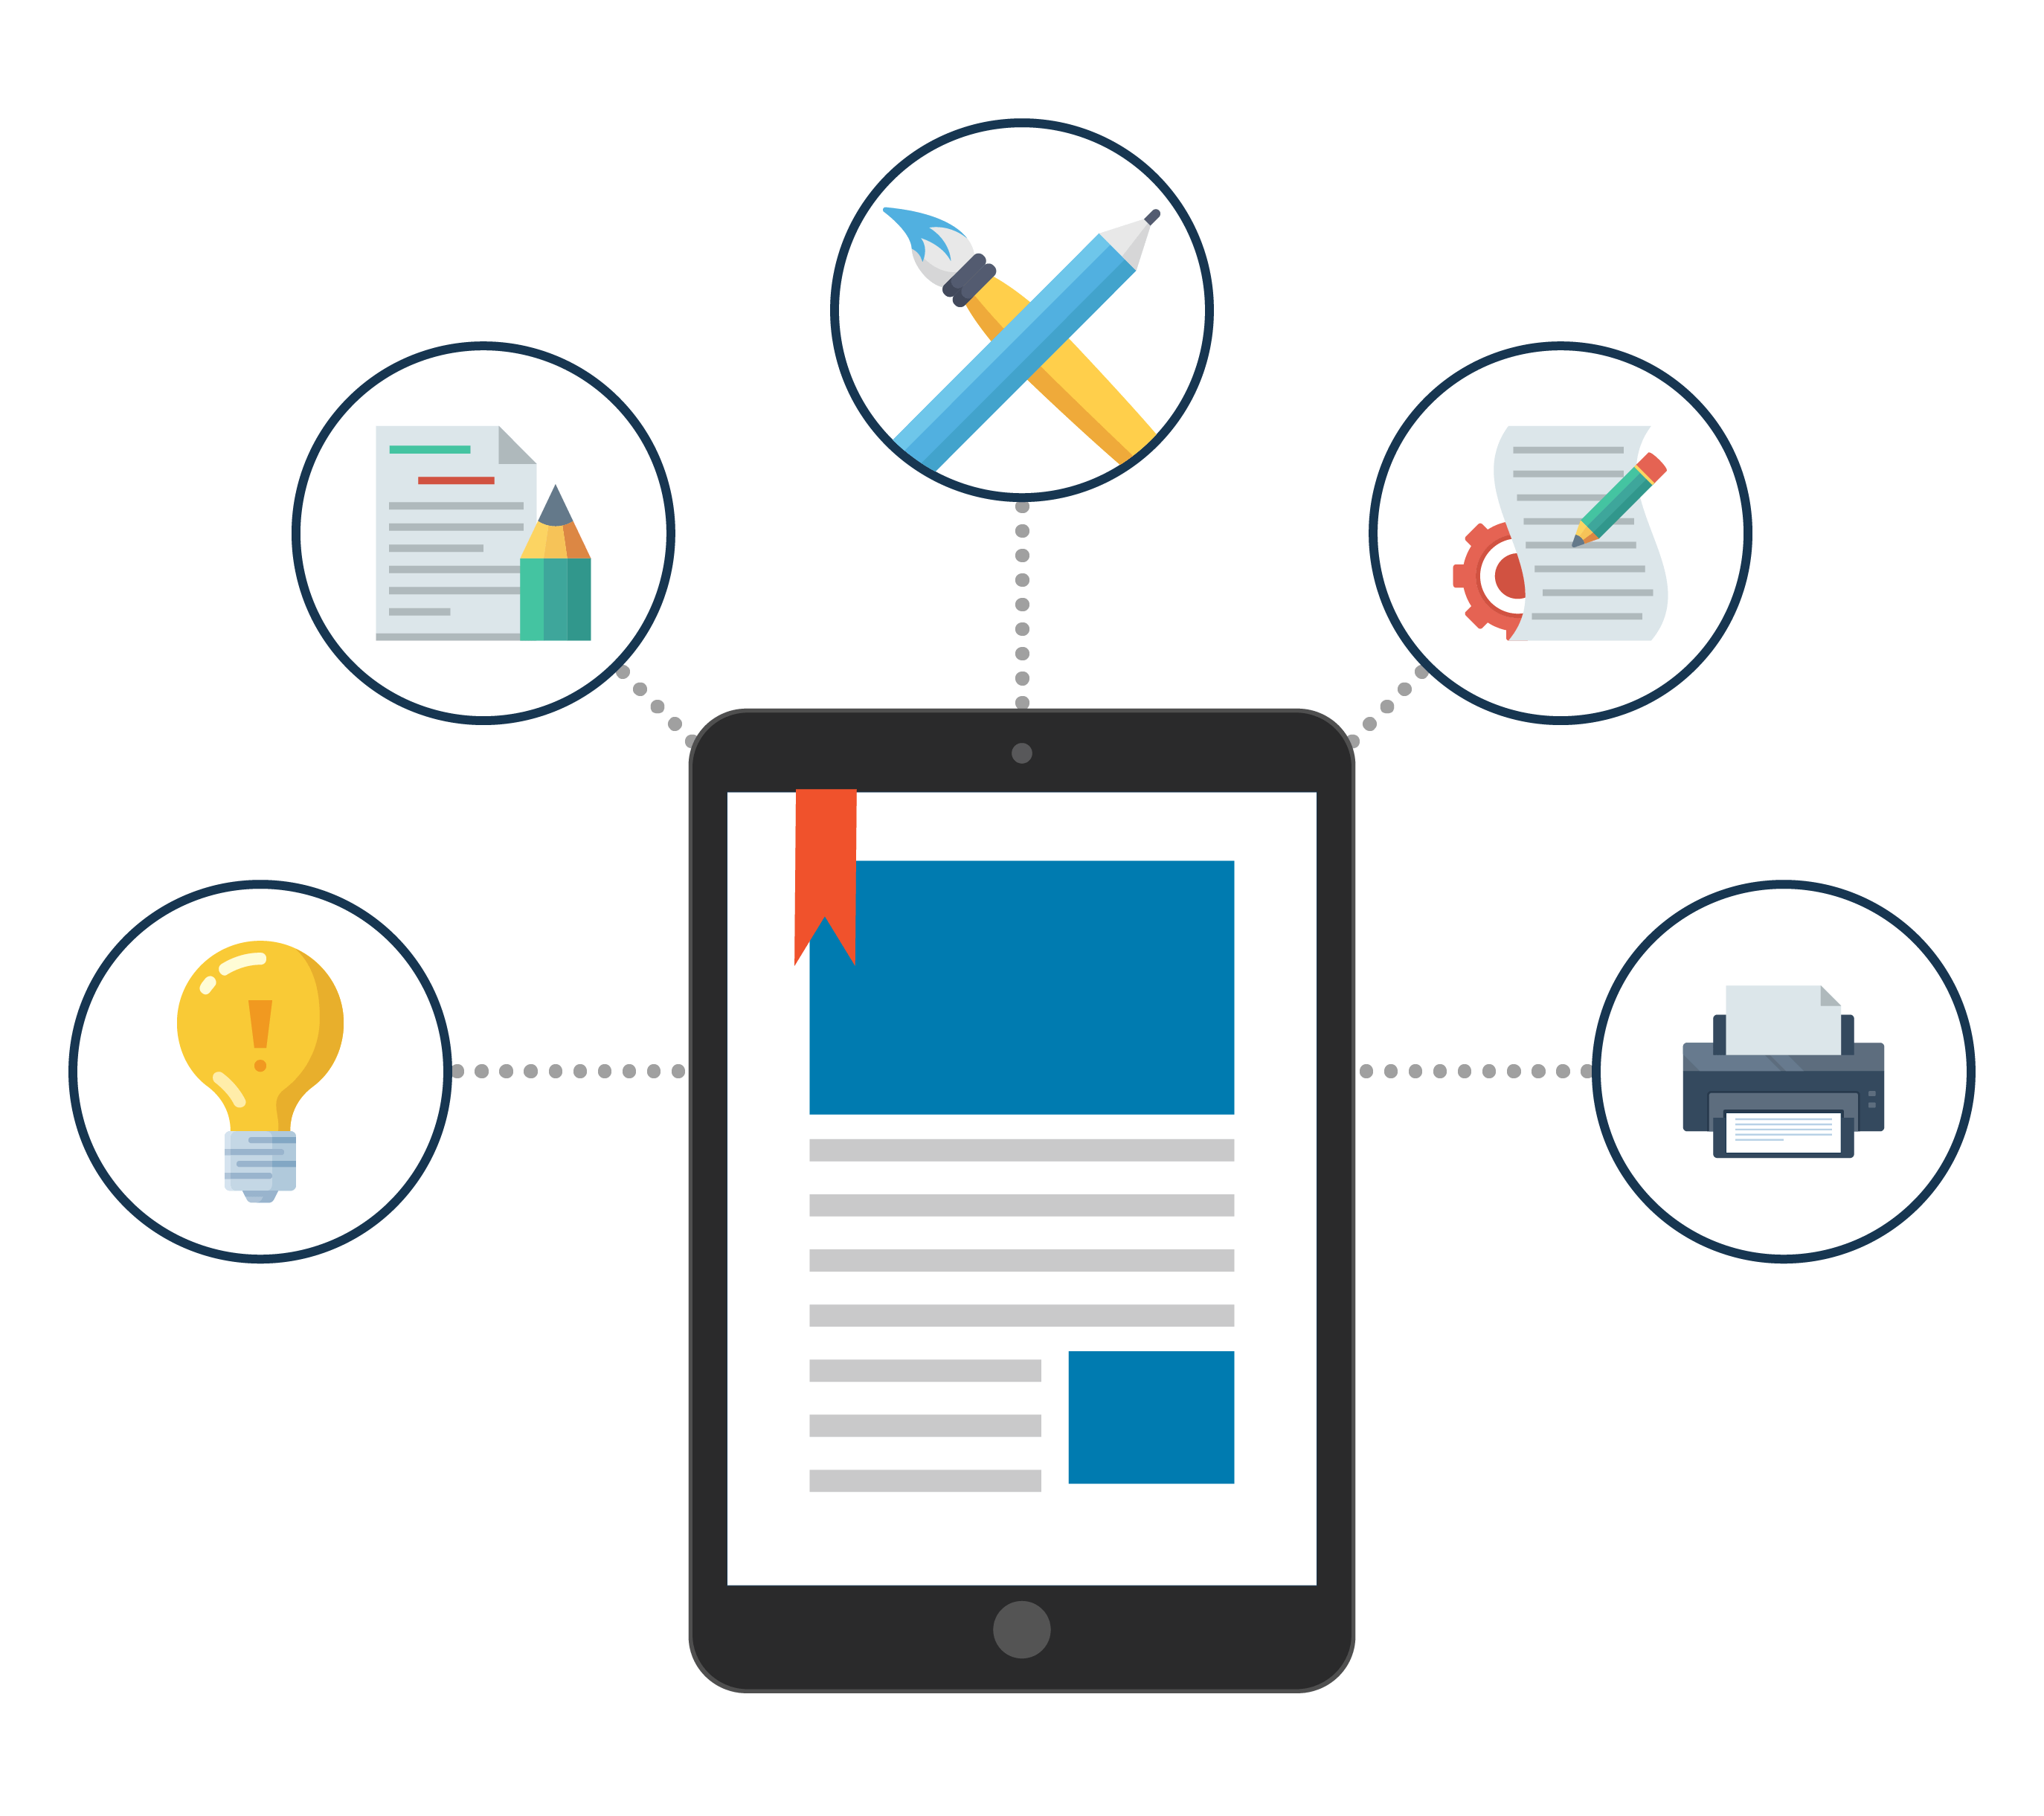 Icons connected to mobile signifying editorial, design and content management services of Hurix.